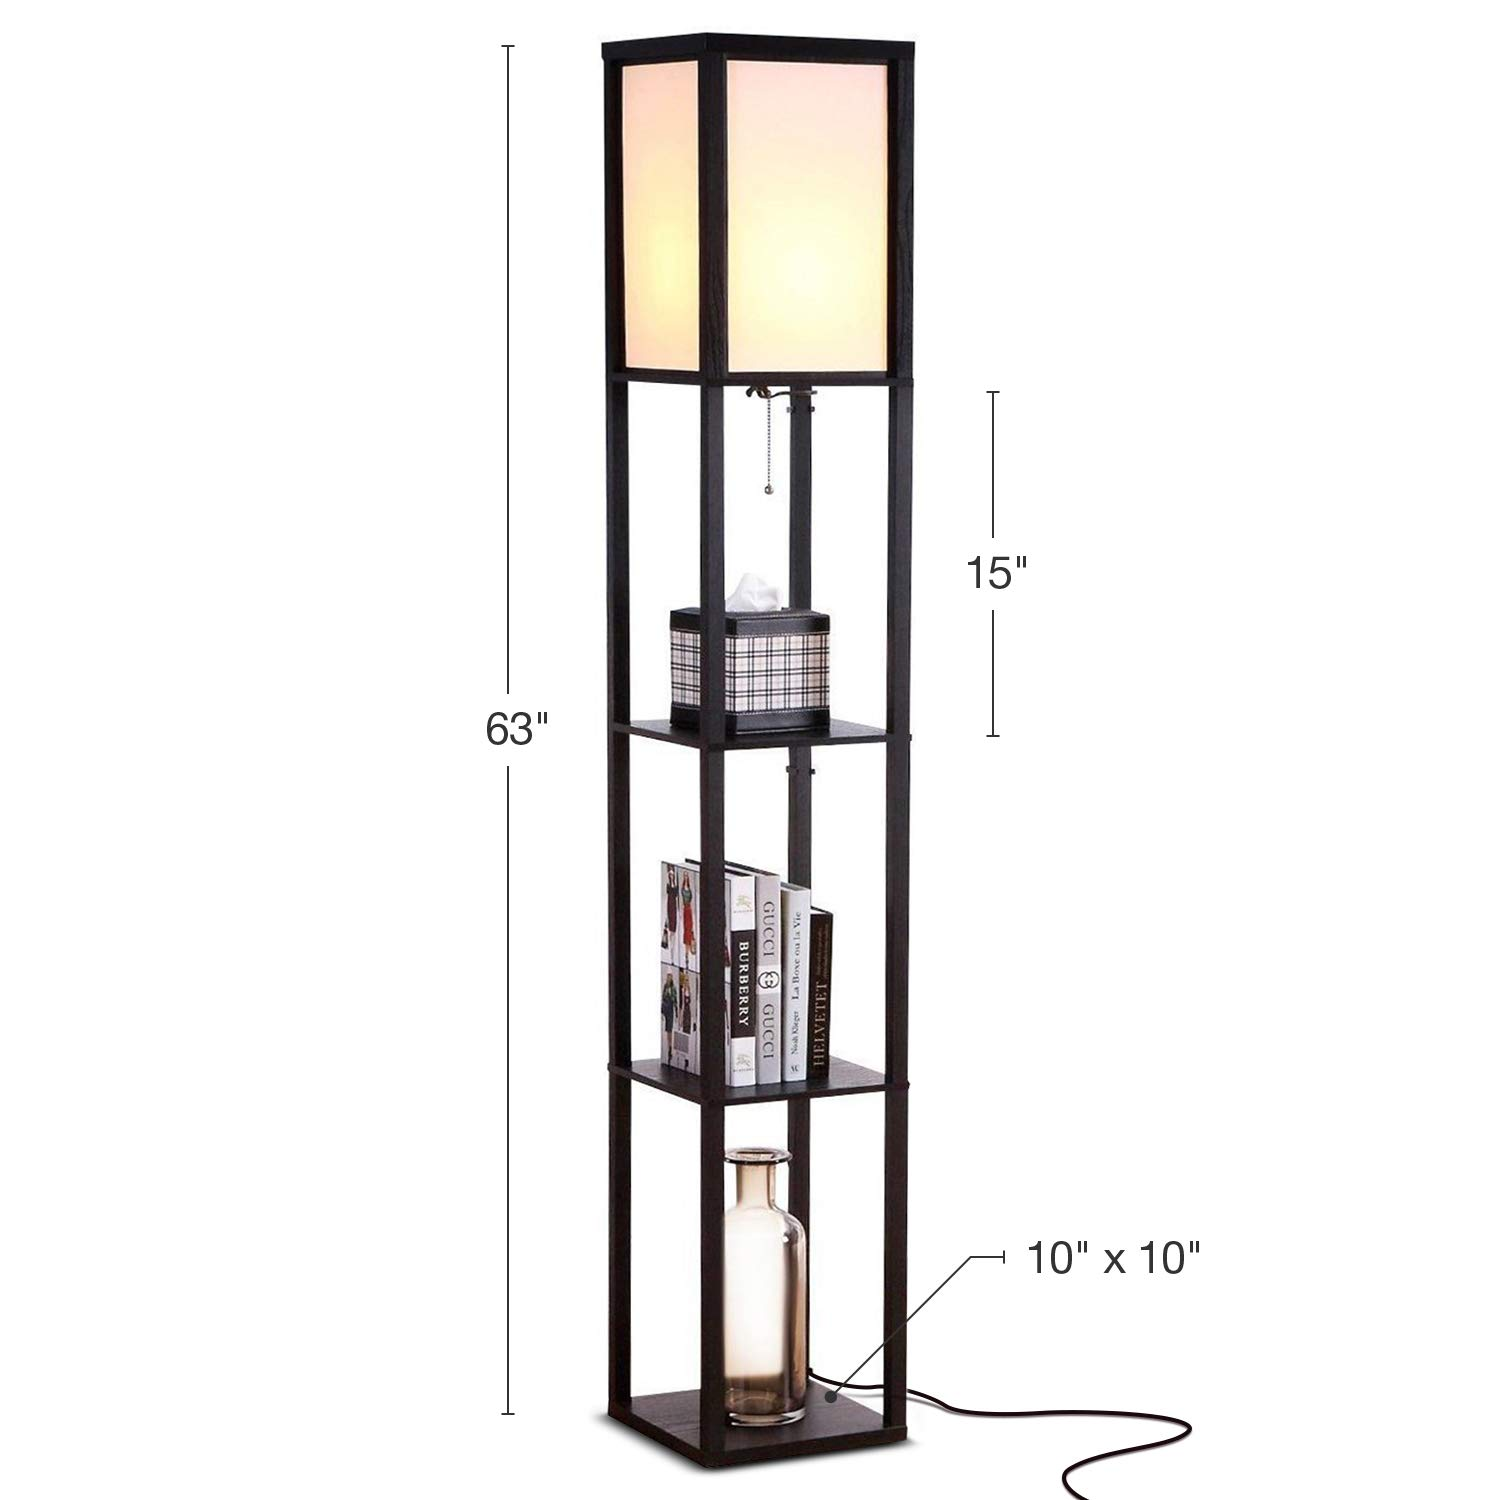 Brightech Maxwell - LED Shelf Floor Lamp - Modern Standing Light for Living Rooms & Bedrooms - Asian Wooden Frame with Open Box Display Shelves - Black by Brightech (Image #3)